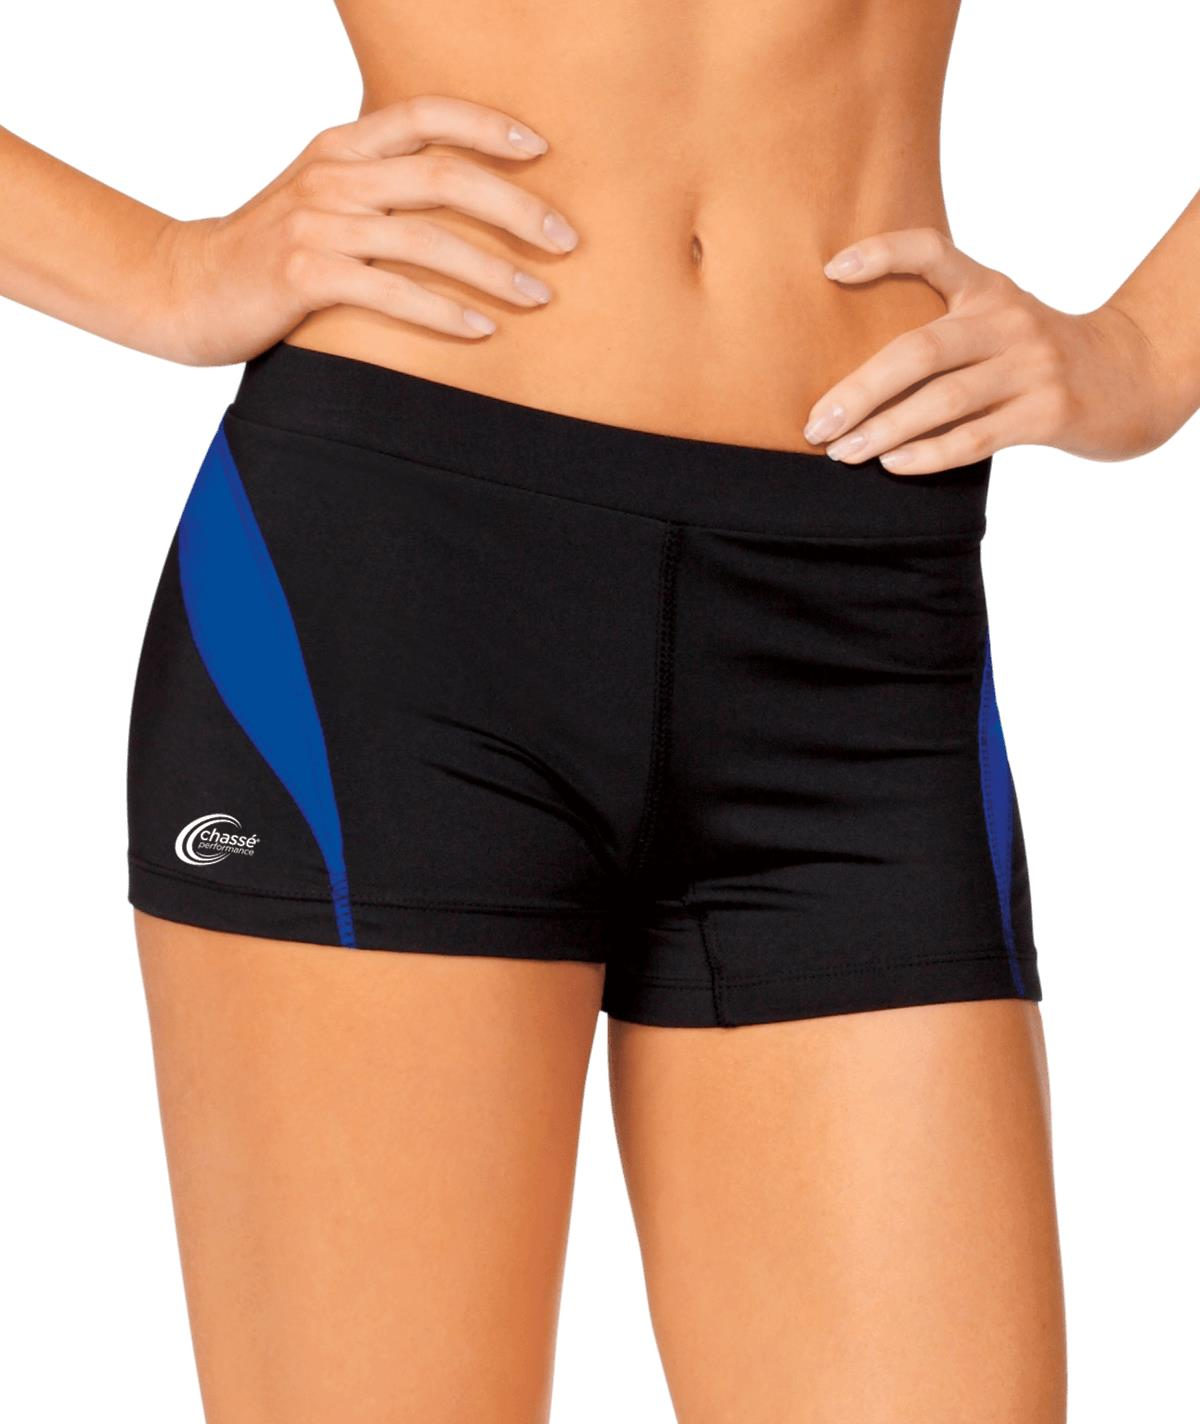 Chassé Performance C-Fuse Short